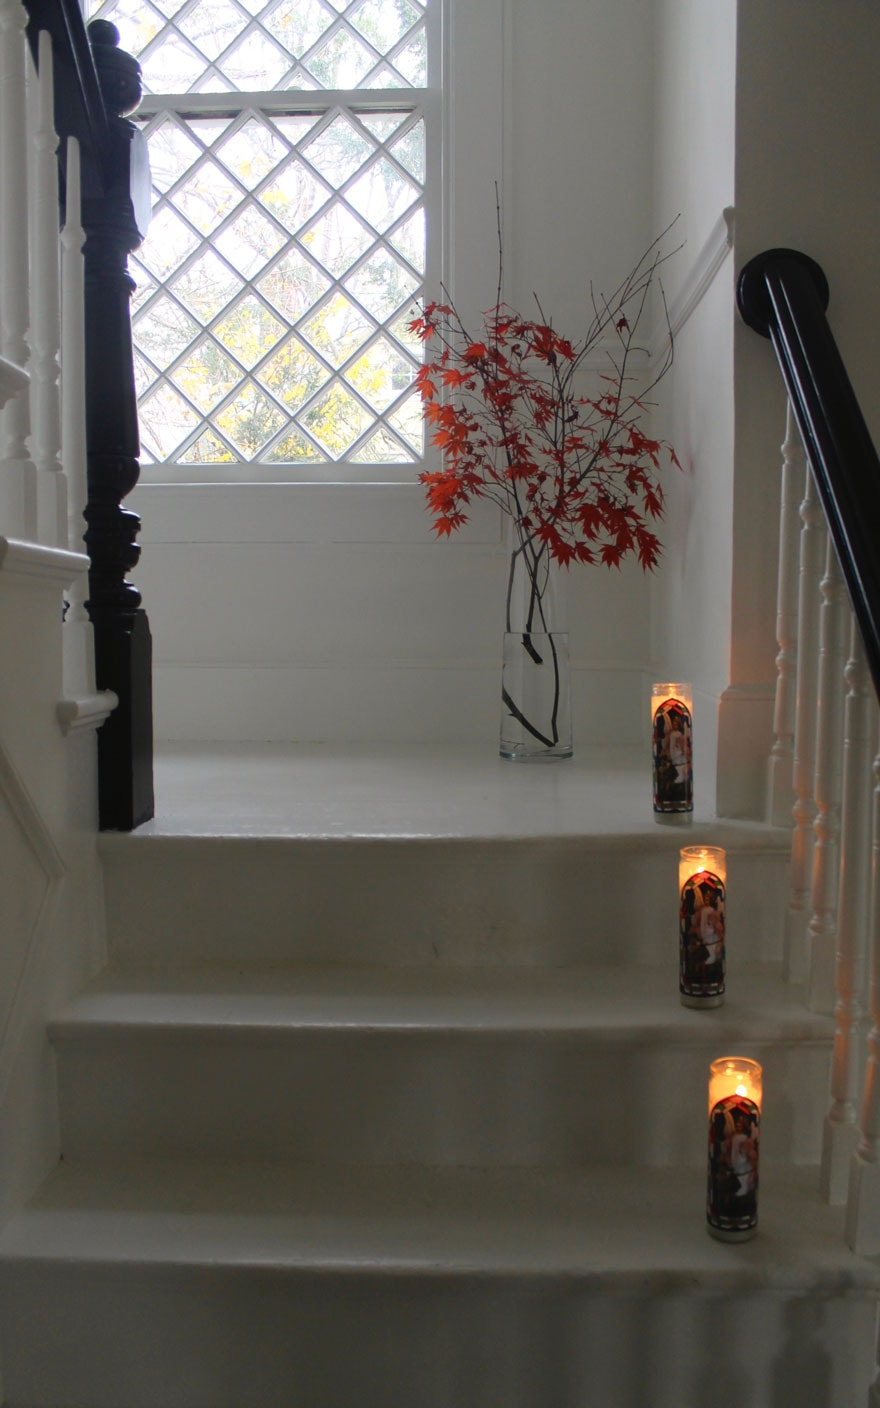 white painted stairs, red leaves in vase, religious candles